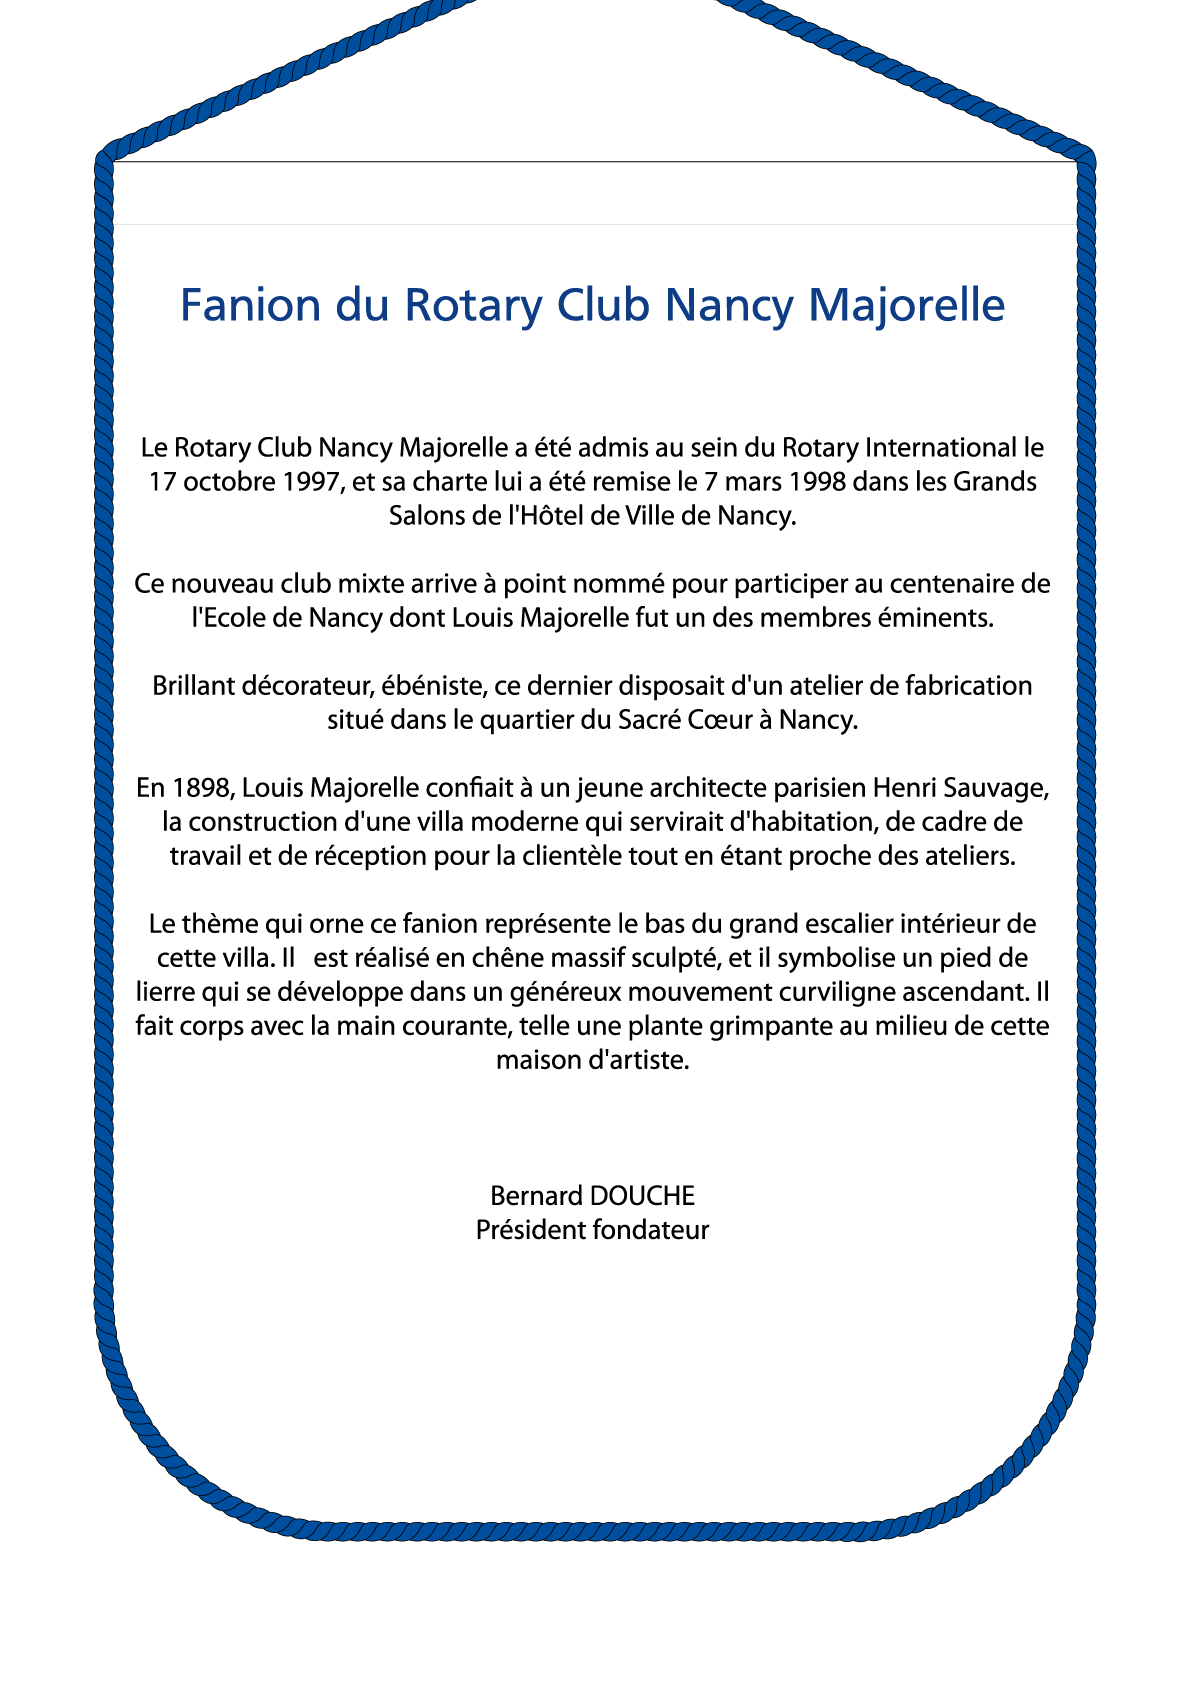 FANION ROTARY CLUB NANCY MAJORELLE V